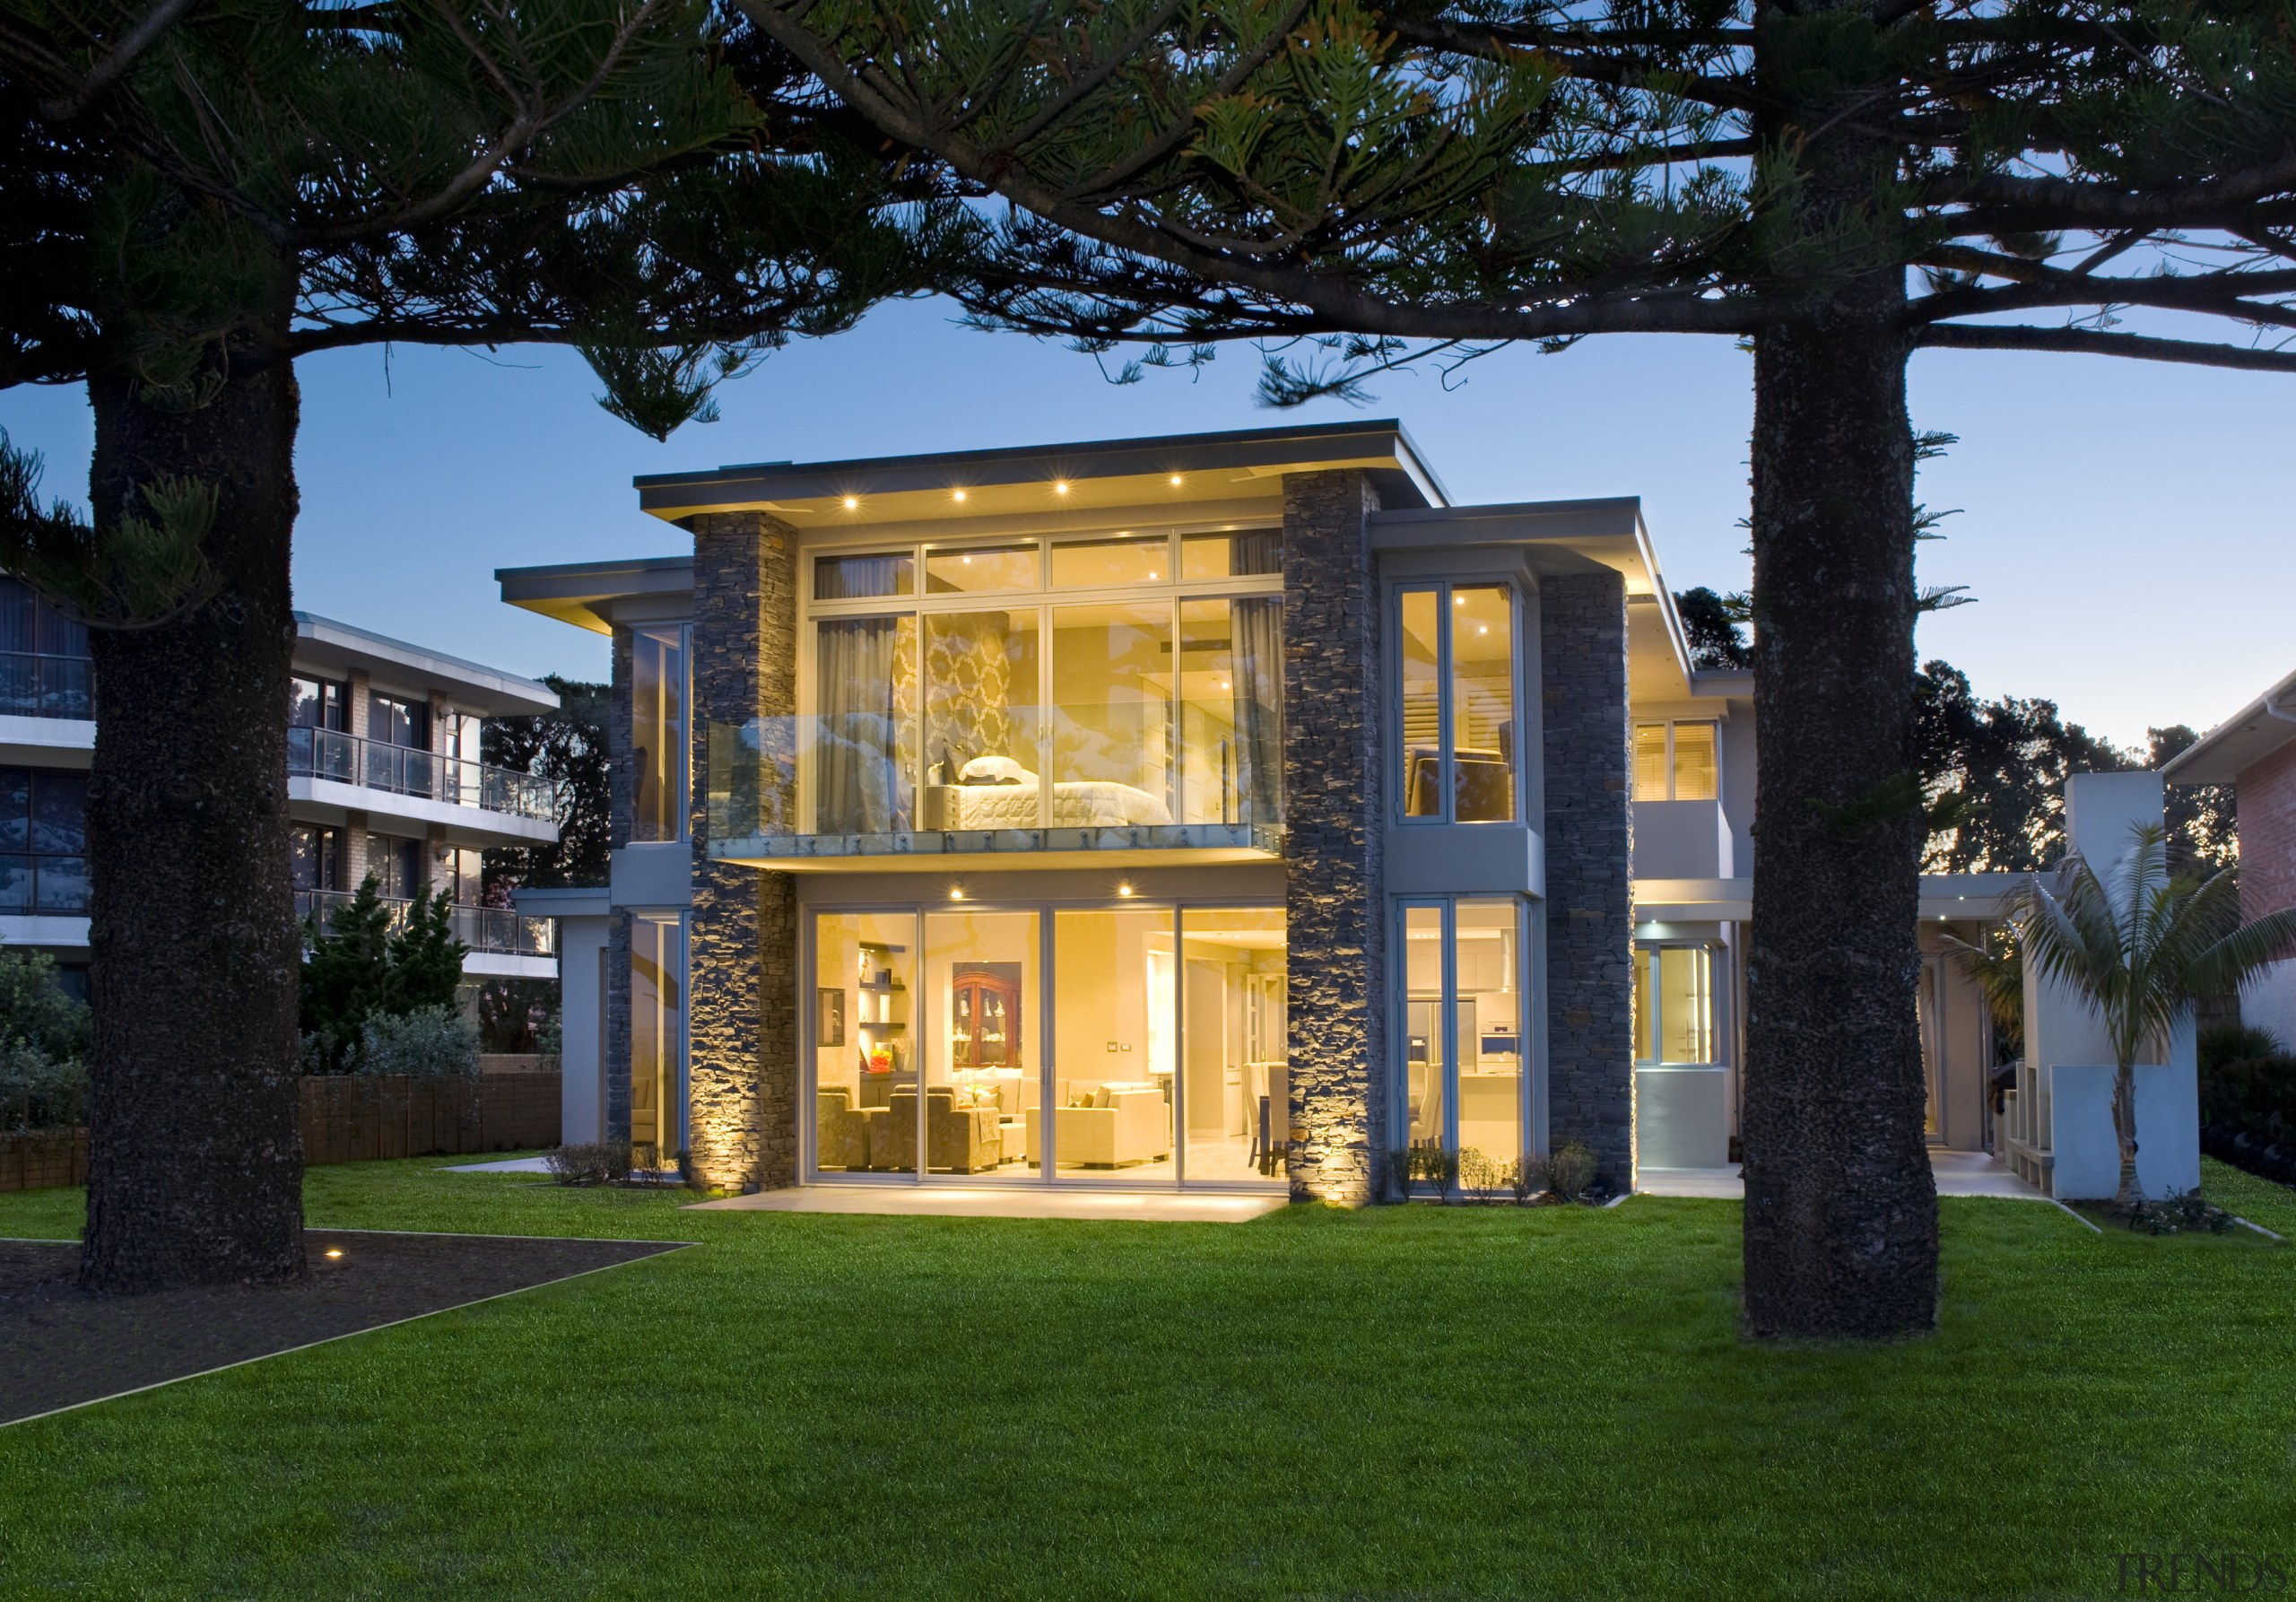 Expansive  glazing and cantilevered balconies maximise the architecture, building, cottage, estate, facade, grass, home, house, lighting, mansion, property, real estate, residential area, villa, window, black, green